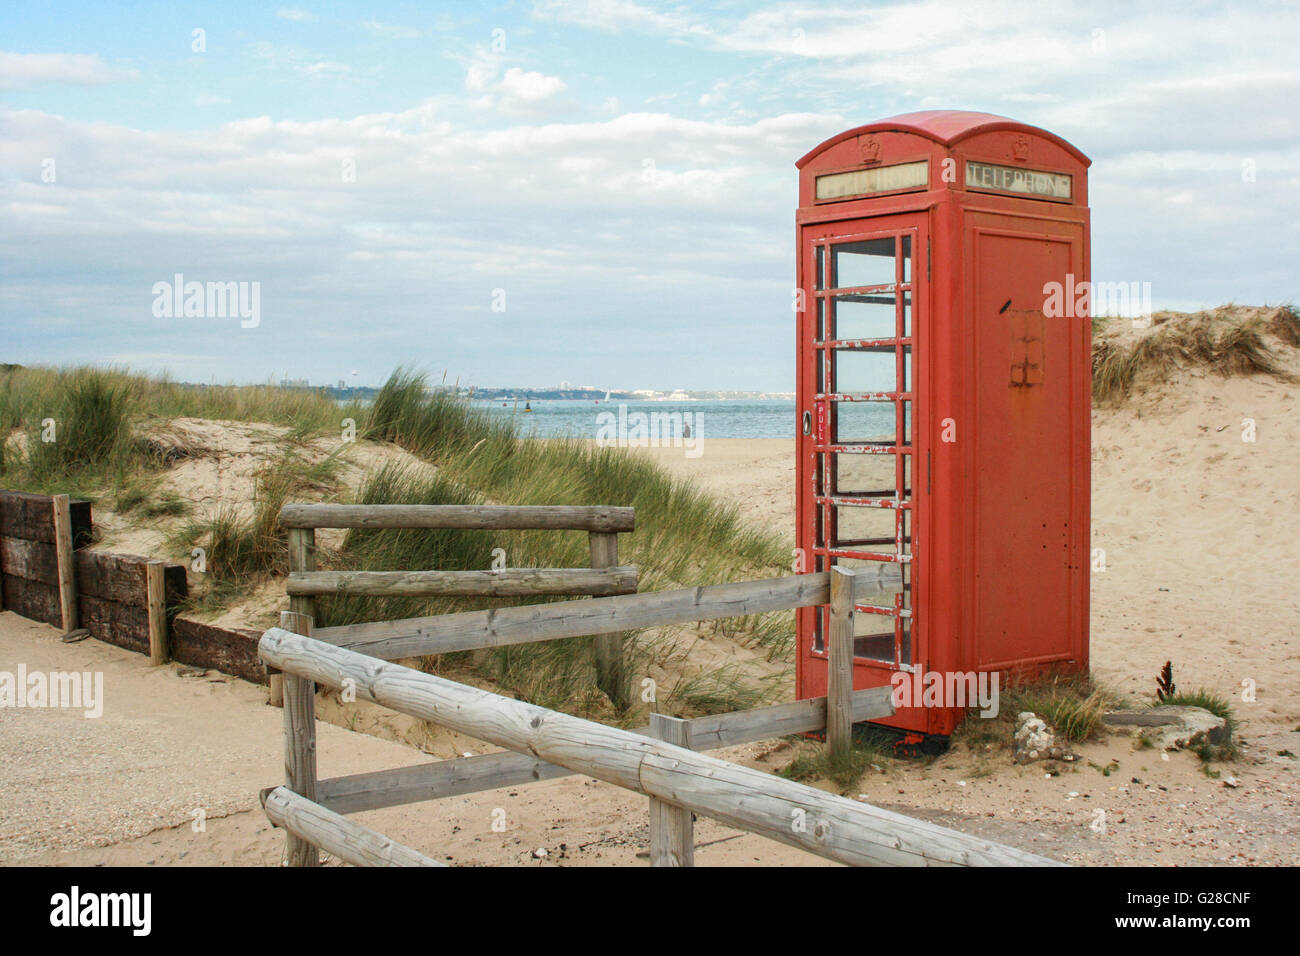 An old red telephone box stands among dunes on the edge of a sandy beach with a lone walker under a cloudy sky, - Stock Image